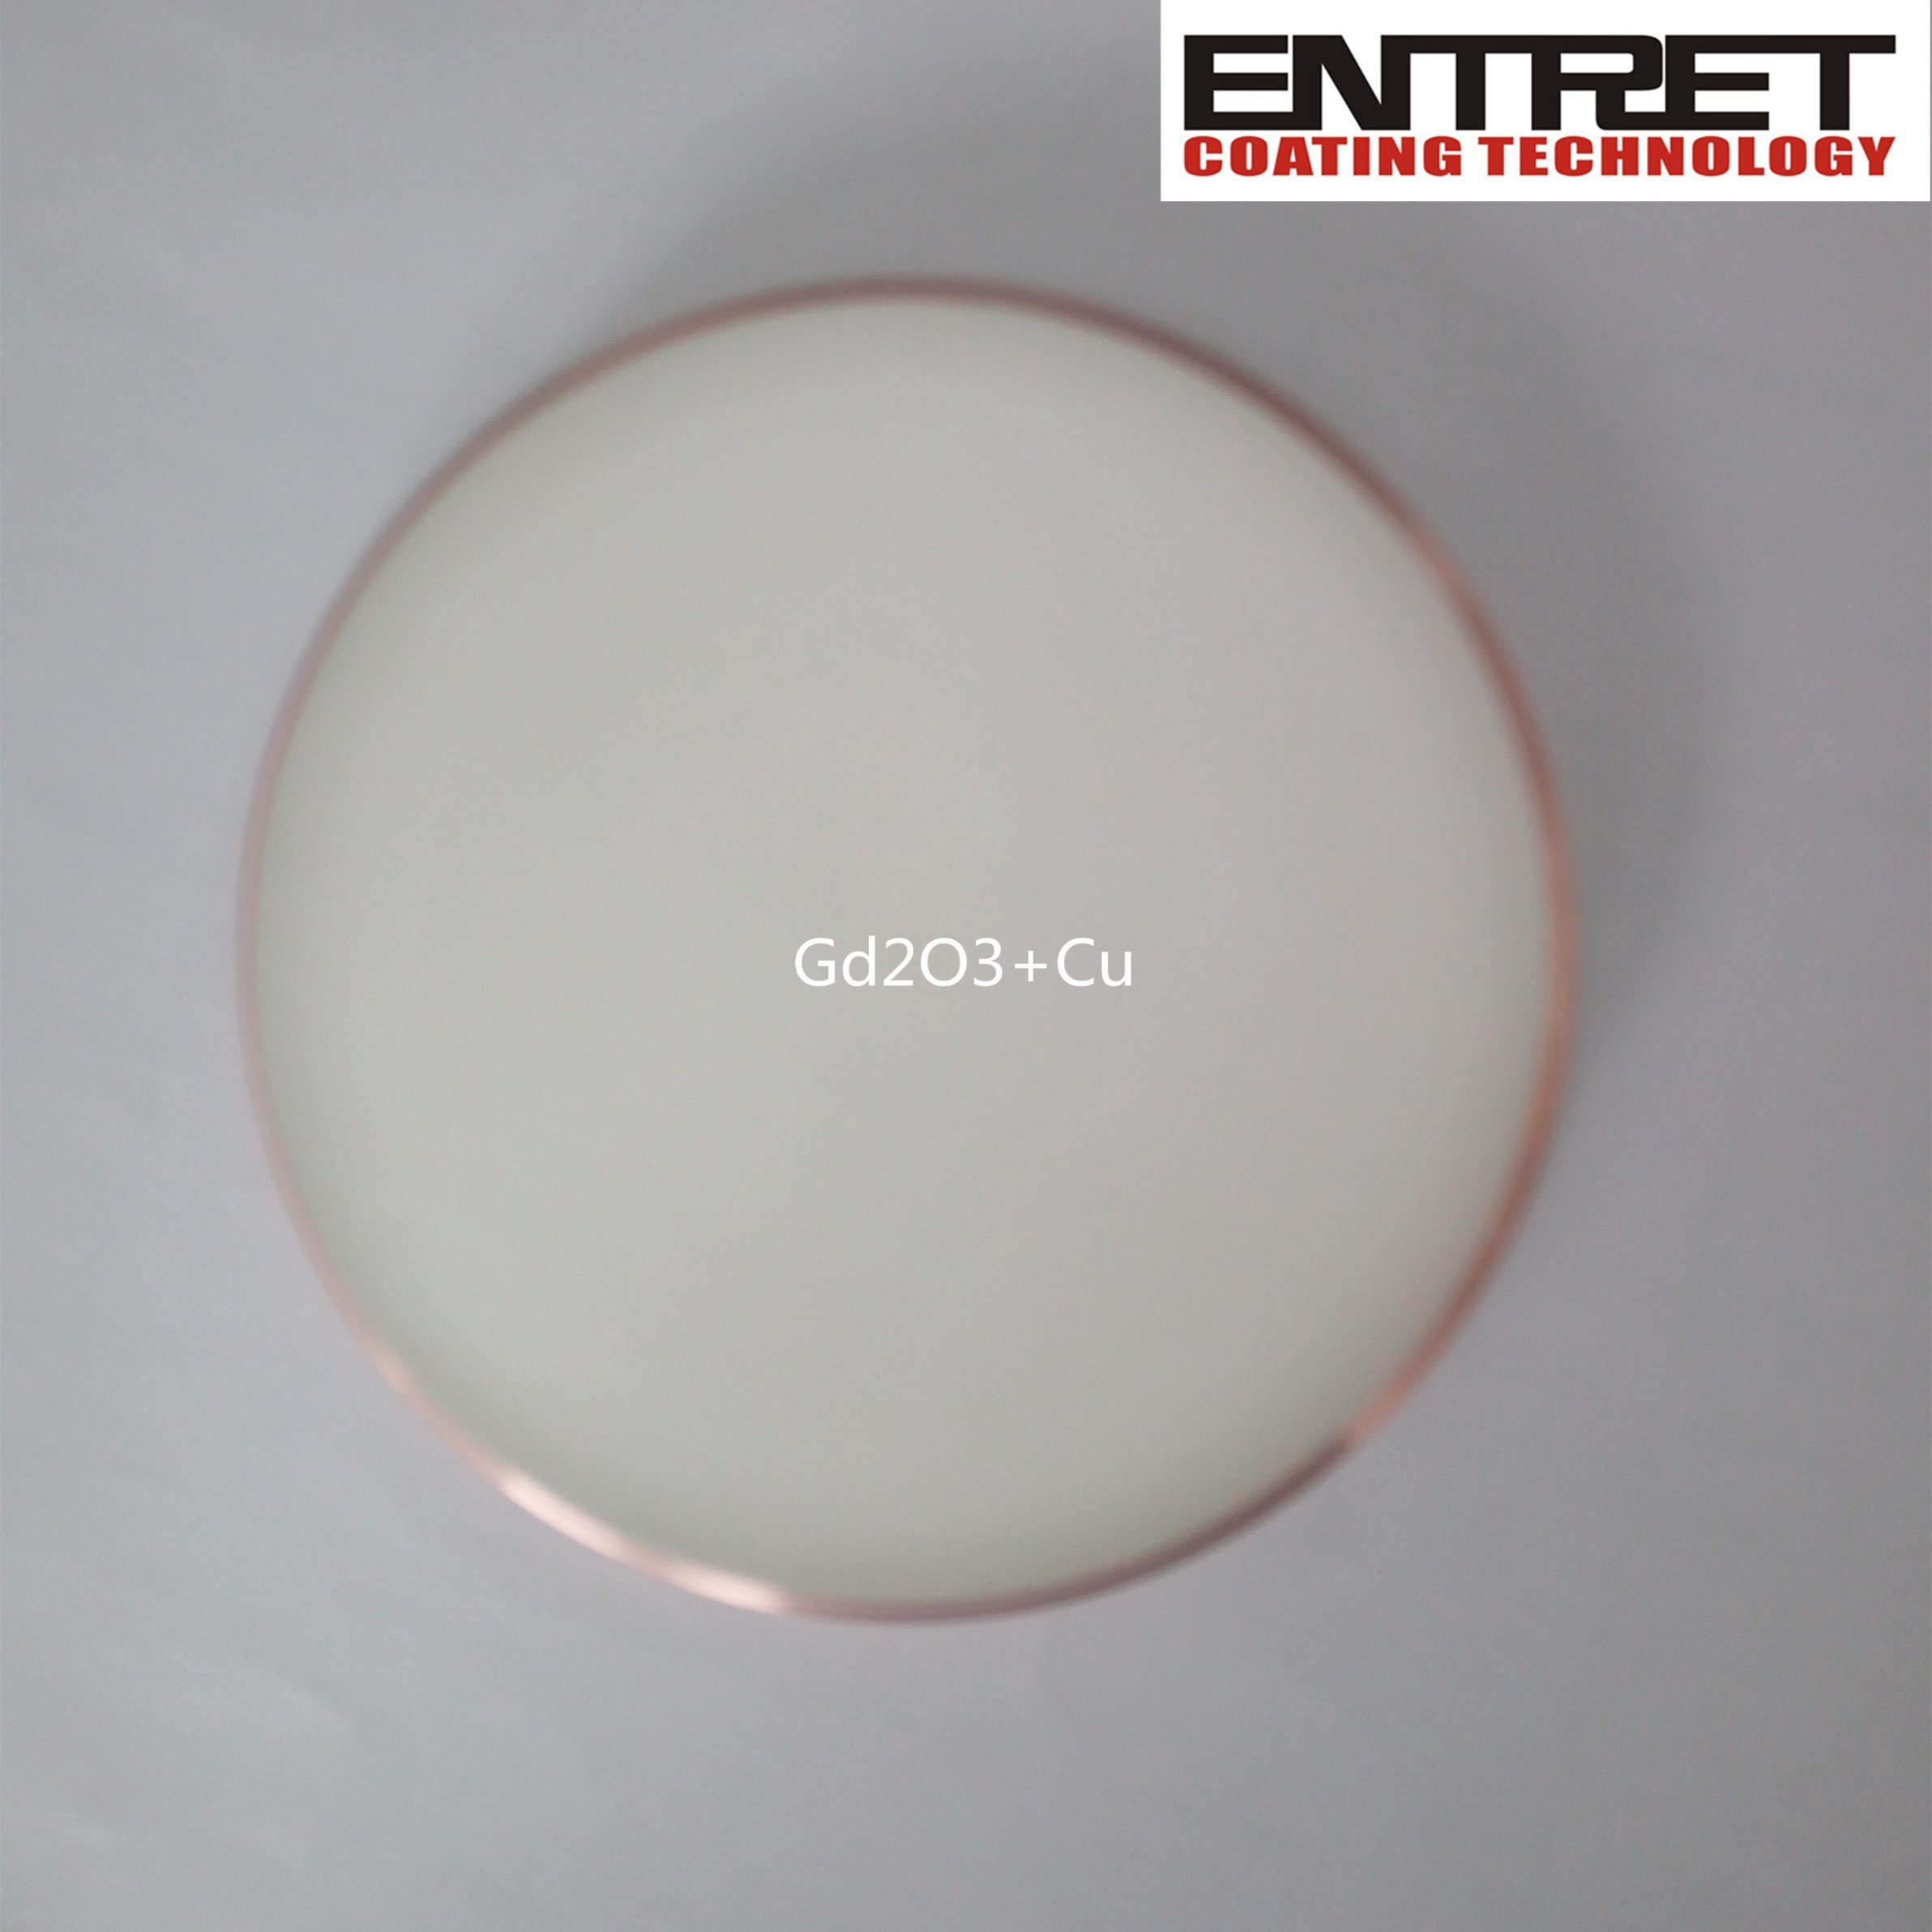 Sputtering Target: Gd2o3 Target Bonded with Copper Backing Plate